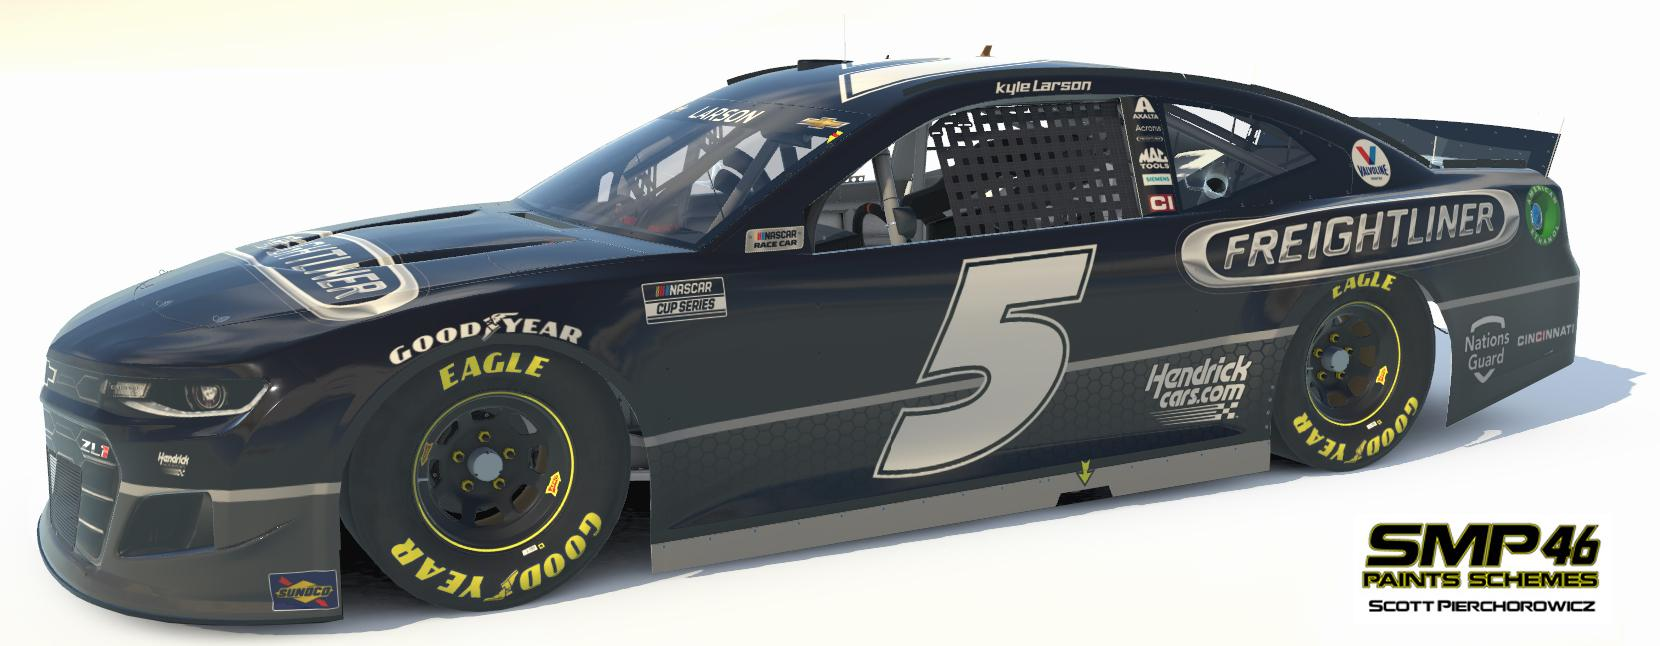 Preview of FreightLiner (Kyle Larson) 2021 by Scott Pierchorowicz